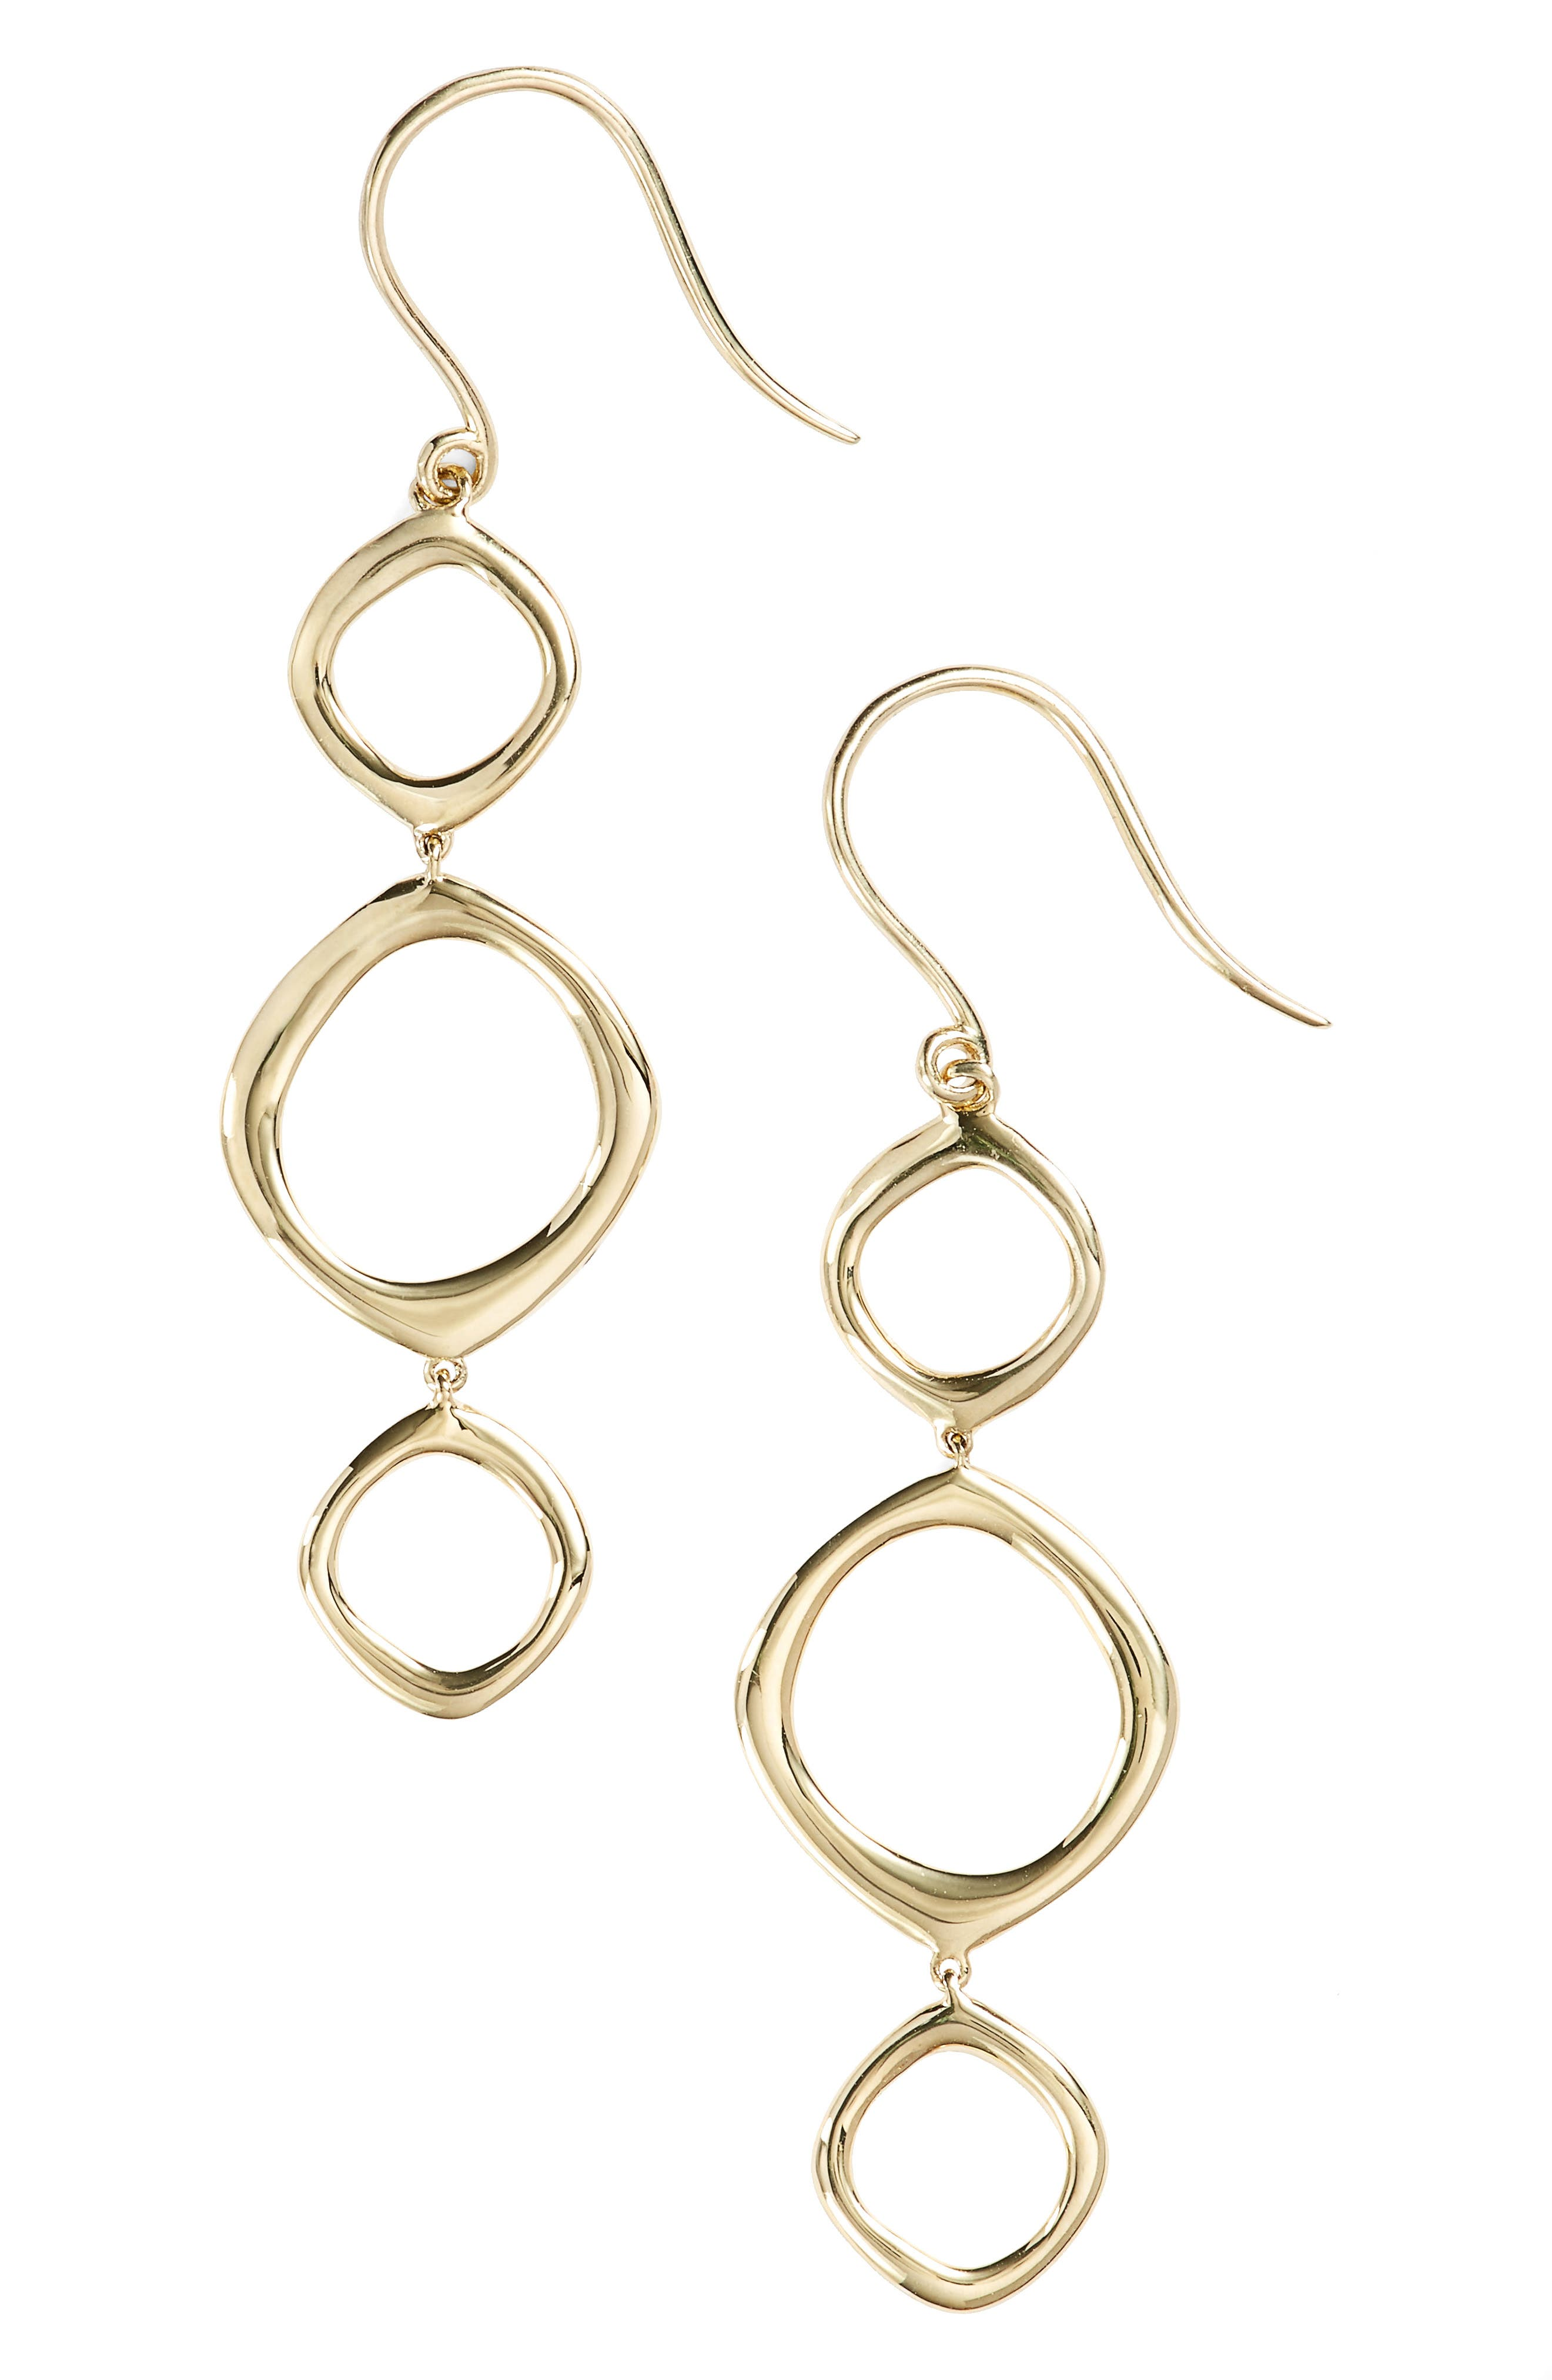 Geo Circle Linear Drop Earrings,                             Main thumbnail 1, color,                             710